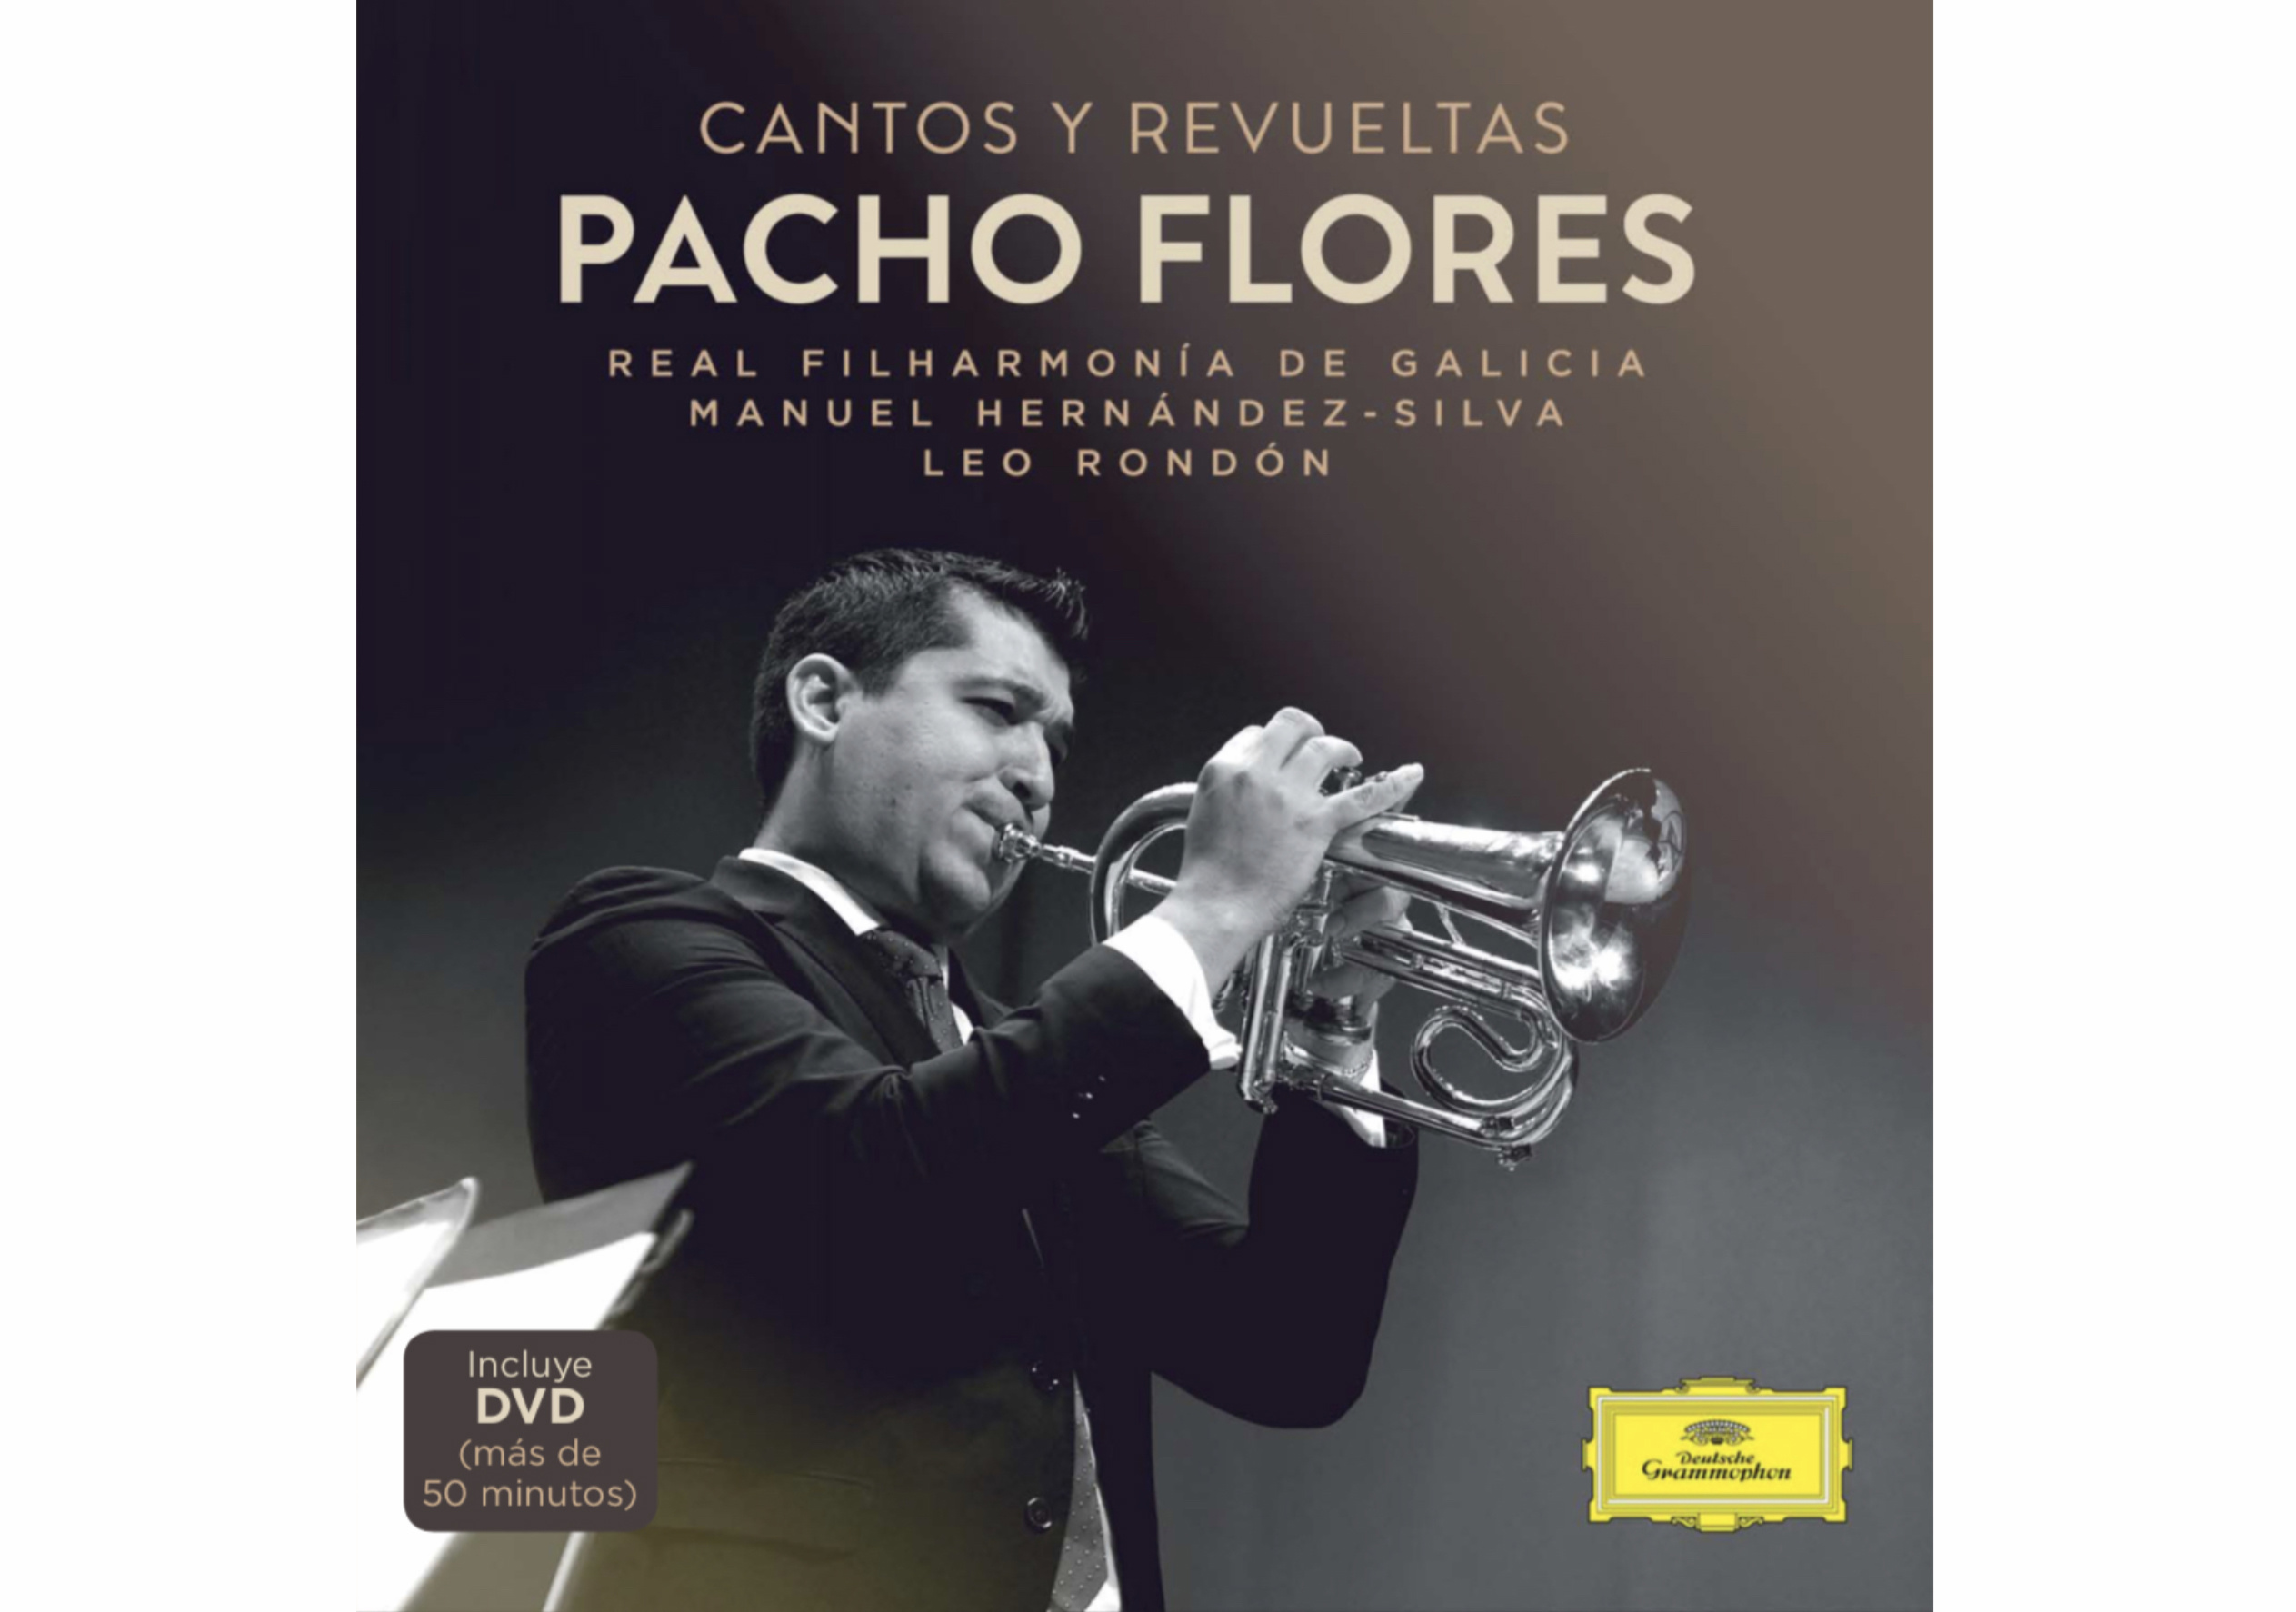 Cantos y Revueltas, Pacho Flores' new disc for Deutsche Grammophon